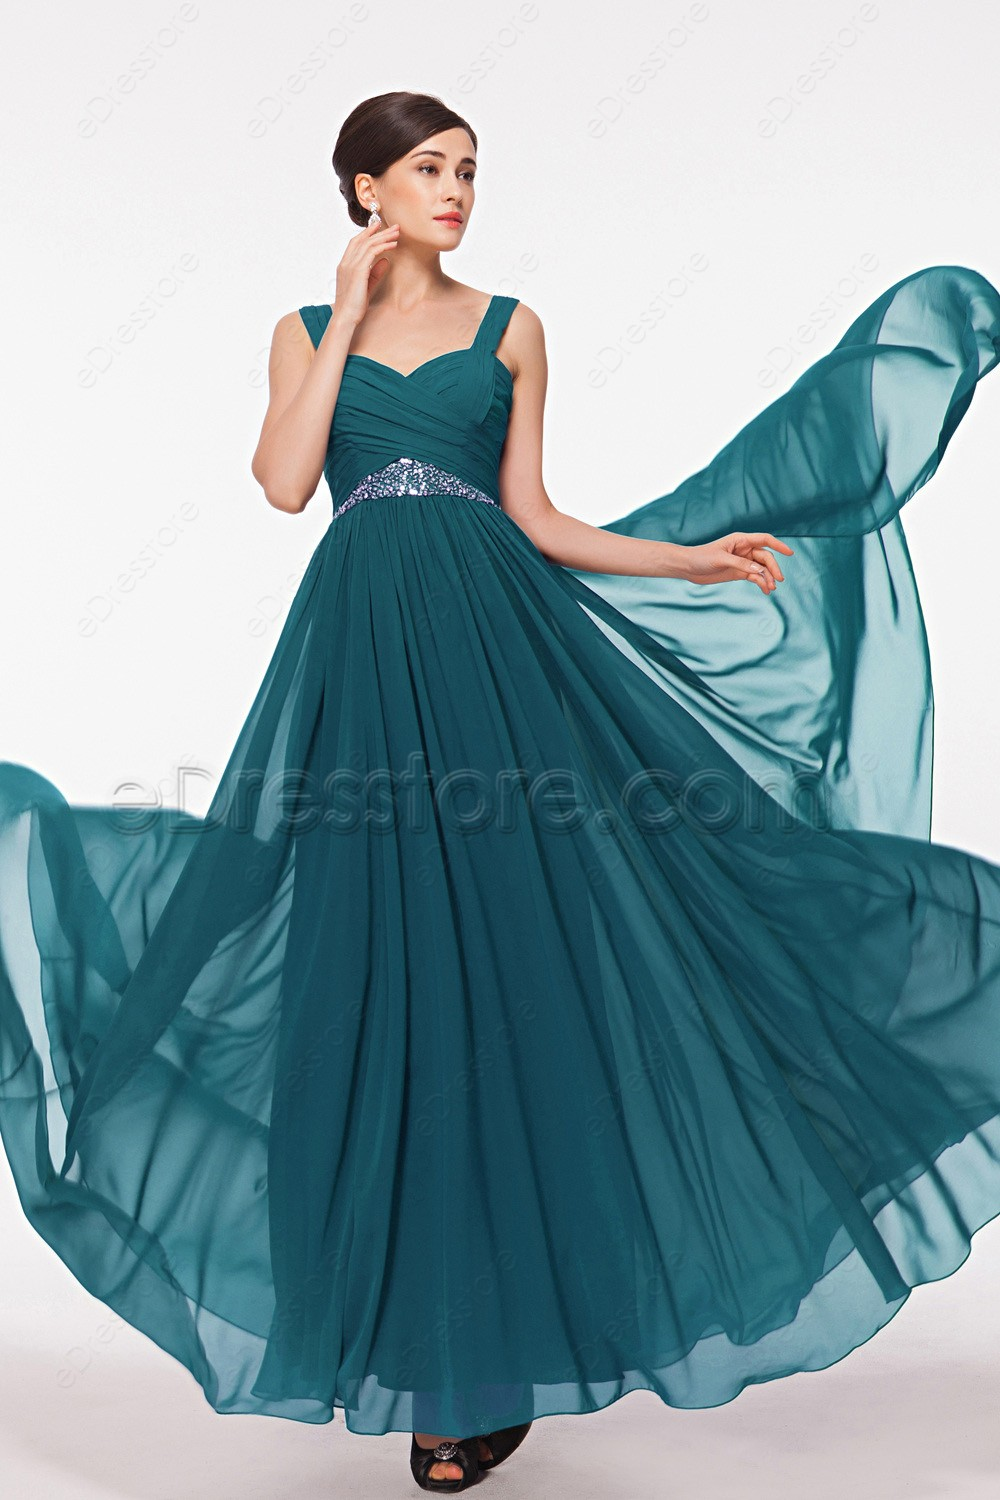 Teal maid of honor dresses bridesmaid dresses for Maid of honor wedding dresses